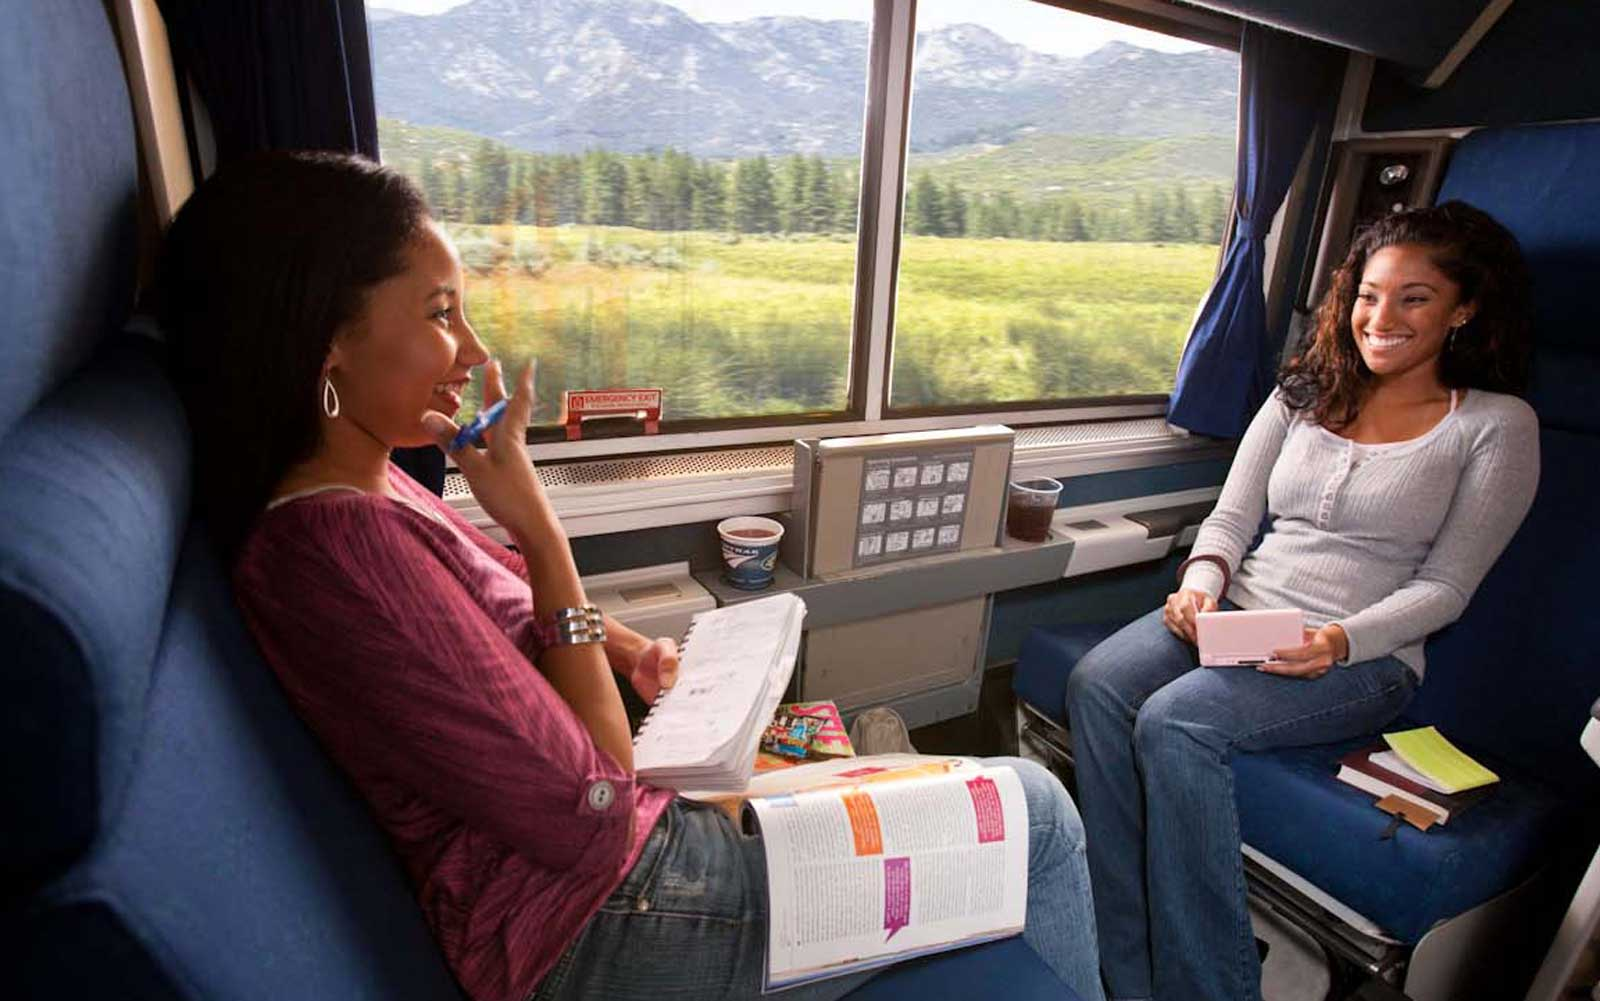 Amtrak is offering a 2-for-1 sale on its private roomettes.